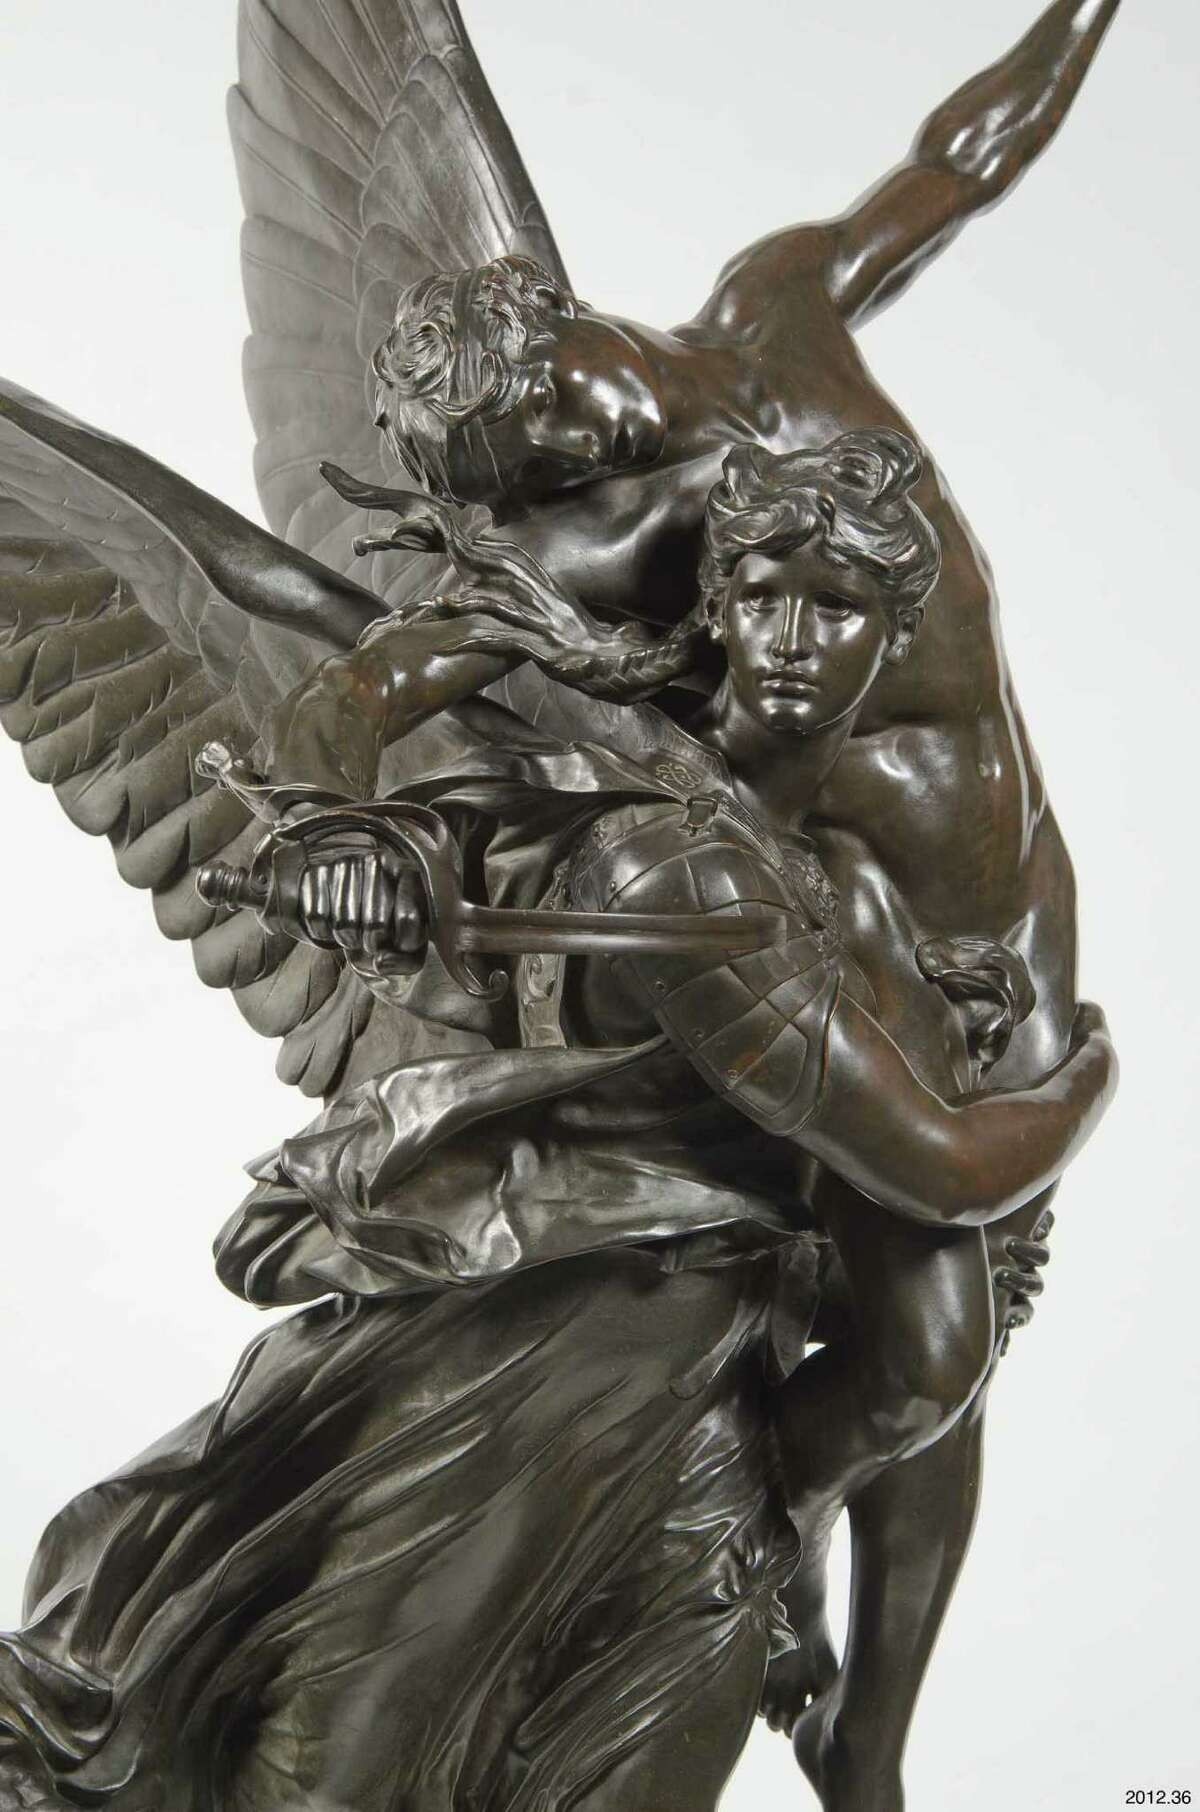 """Antonin Mercie's """"Gloria Victis!"""" was one of the most famous sculptures of late 19th-century France."""